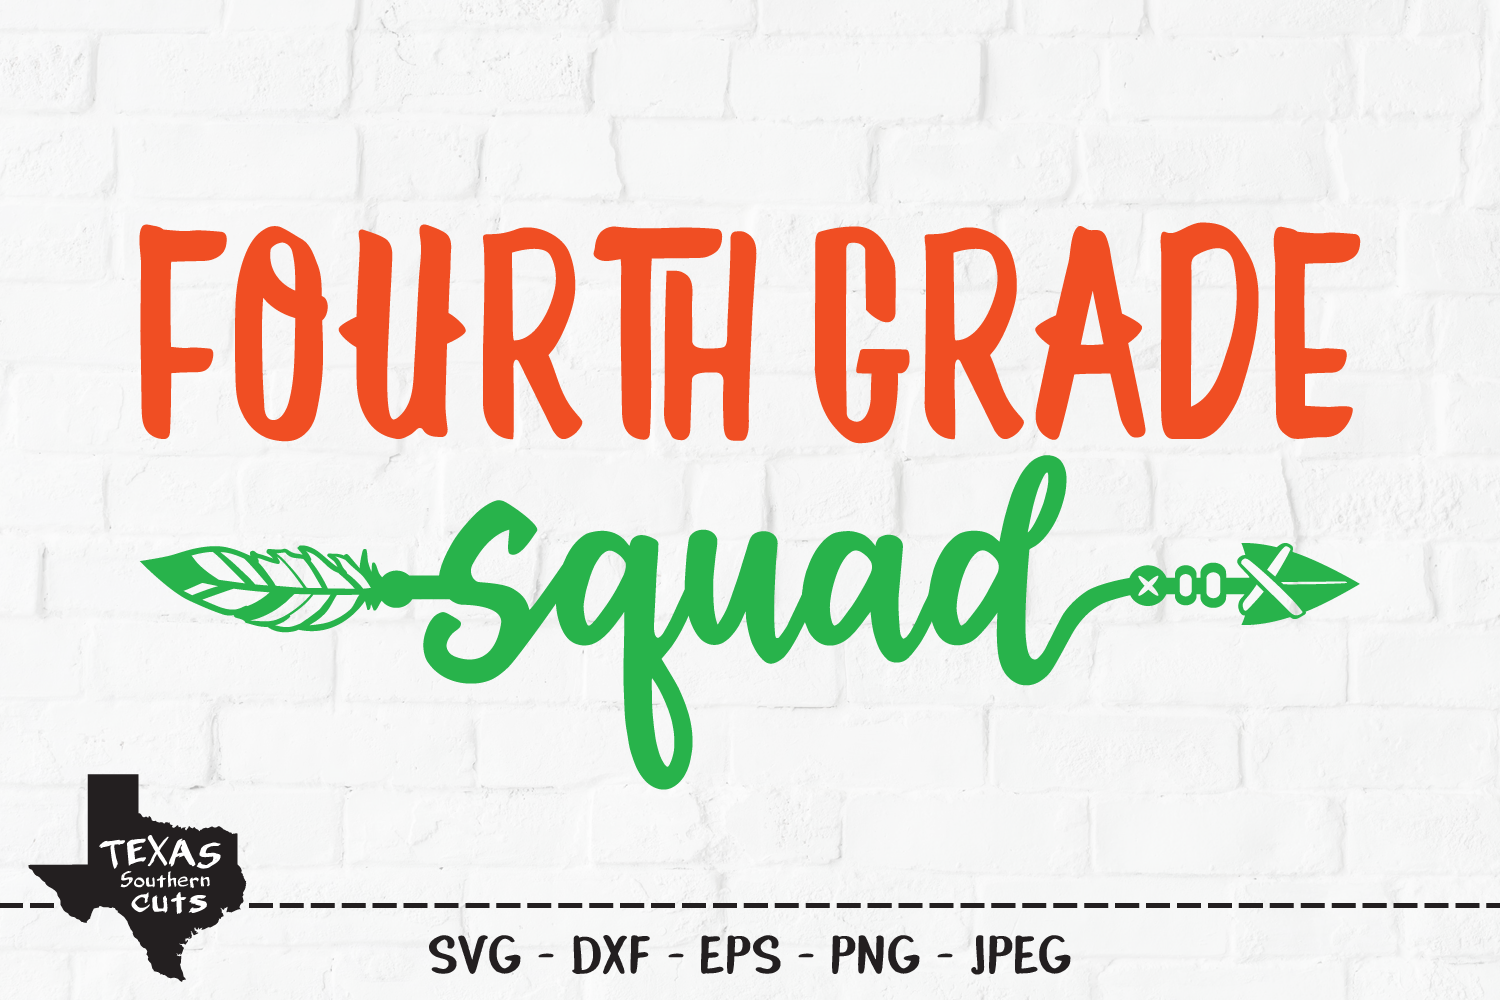 Download Free Fourth Grade School Shirt Design Graphic By Texassoutherncuts for Cricut Explore, Silhouette and other cutting machines.